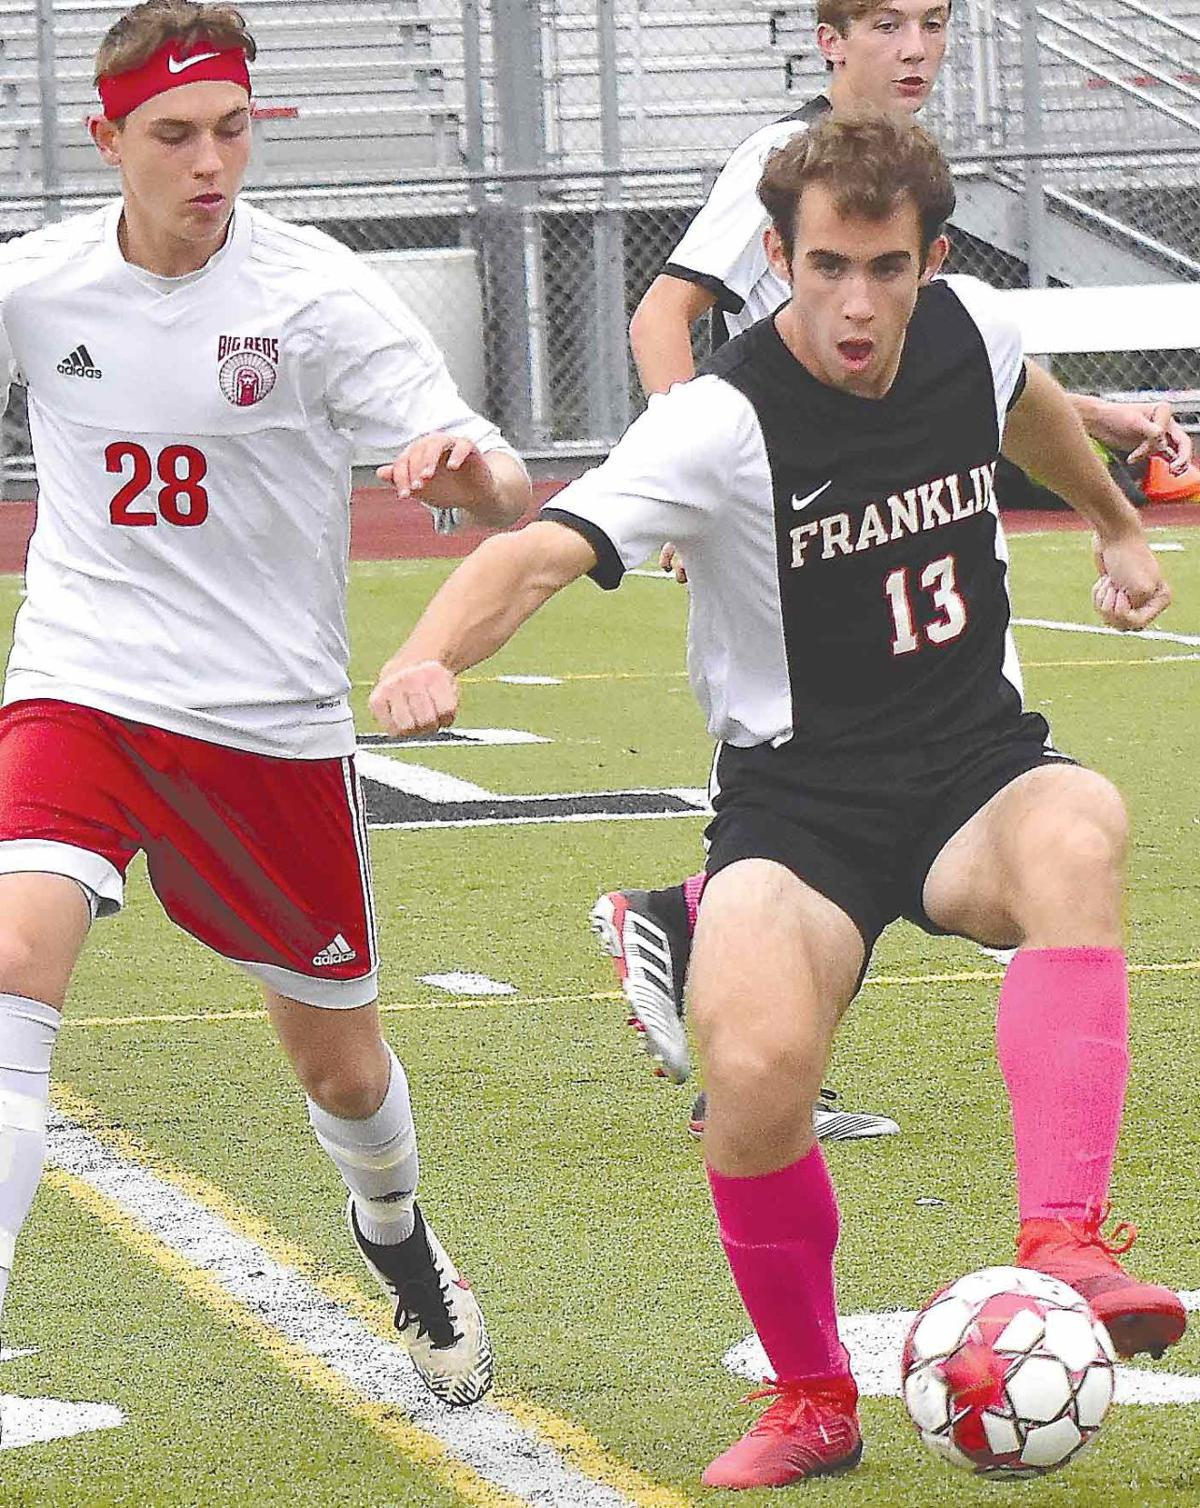 Haniwalt, Leccia lead FHS booters past Big Reds, 1-0